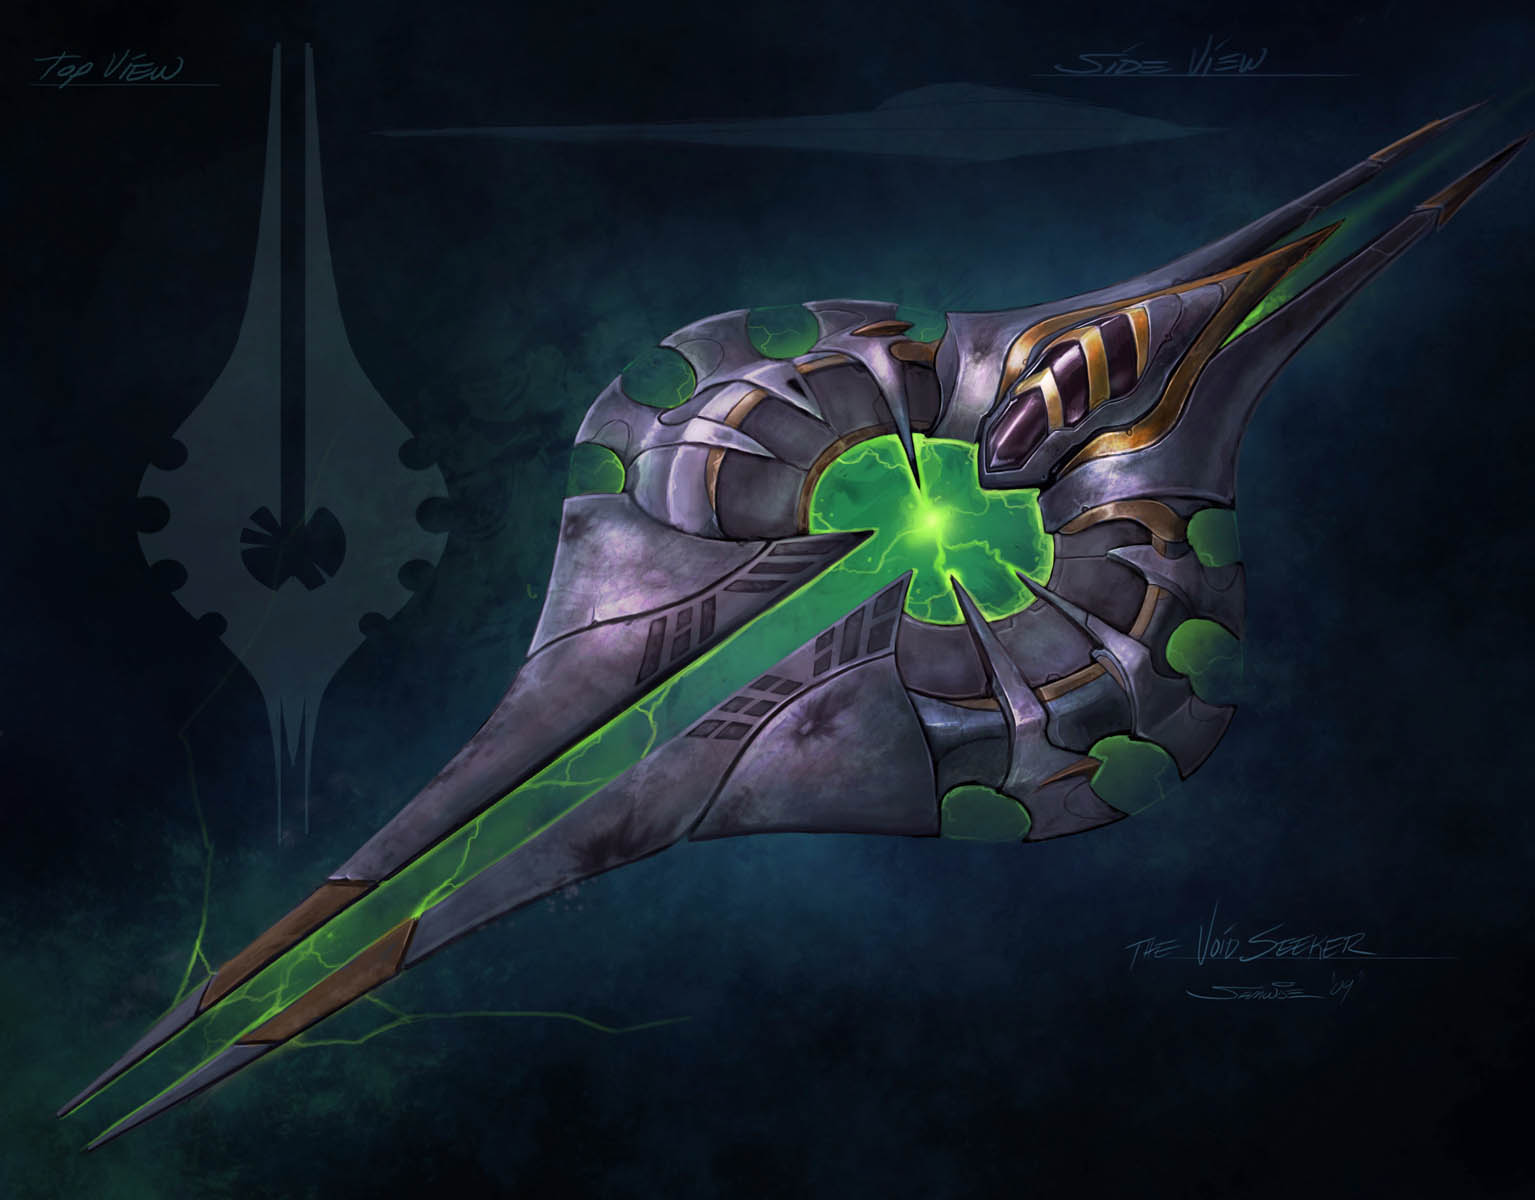 http://images1.wikia.nocookie.net/__cb20091009232421/starcraft/images/a/a2/VoidSeeker_SC2_Cncpt1.jpg